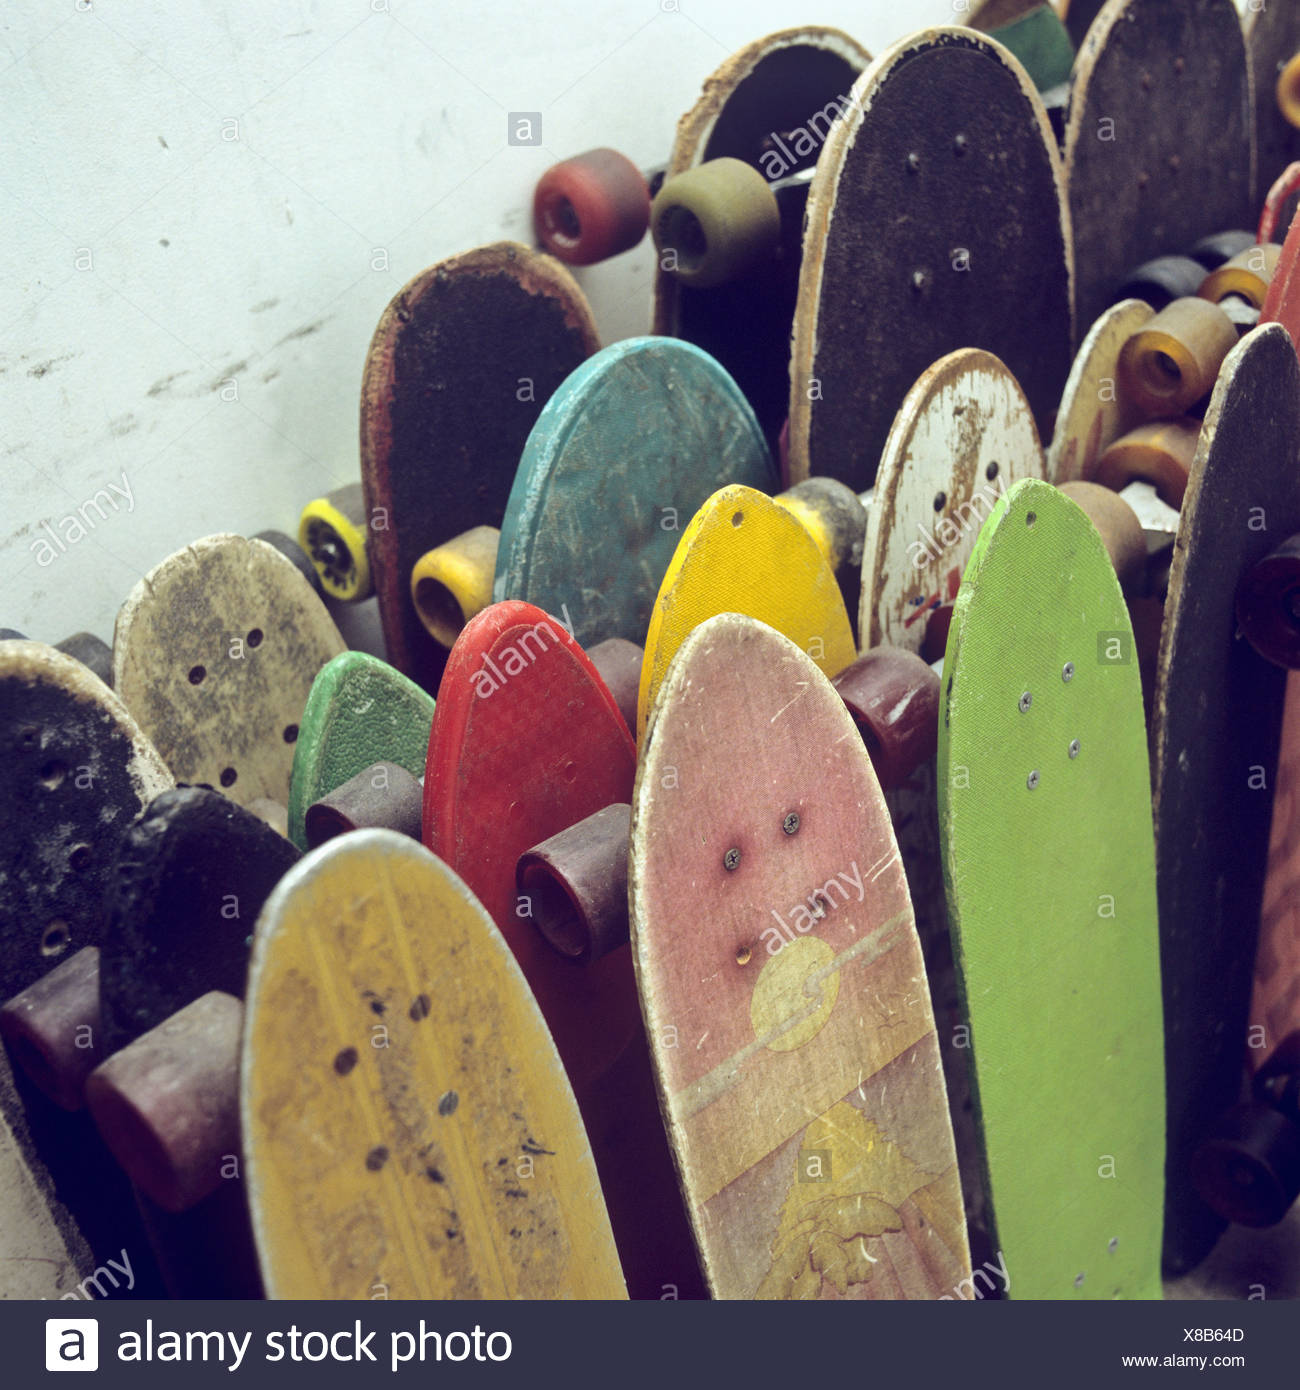 5cdb7d075c Rows of used skateboards leaning against a wall Stock Photo ...